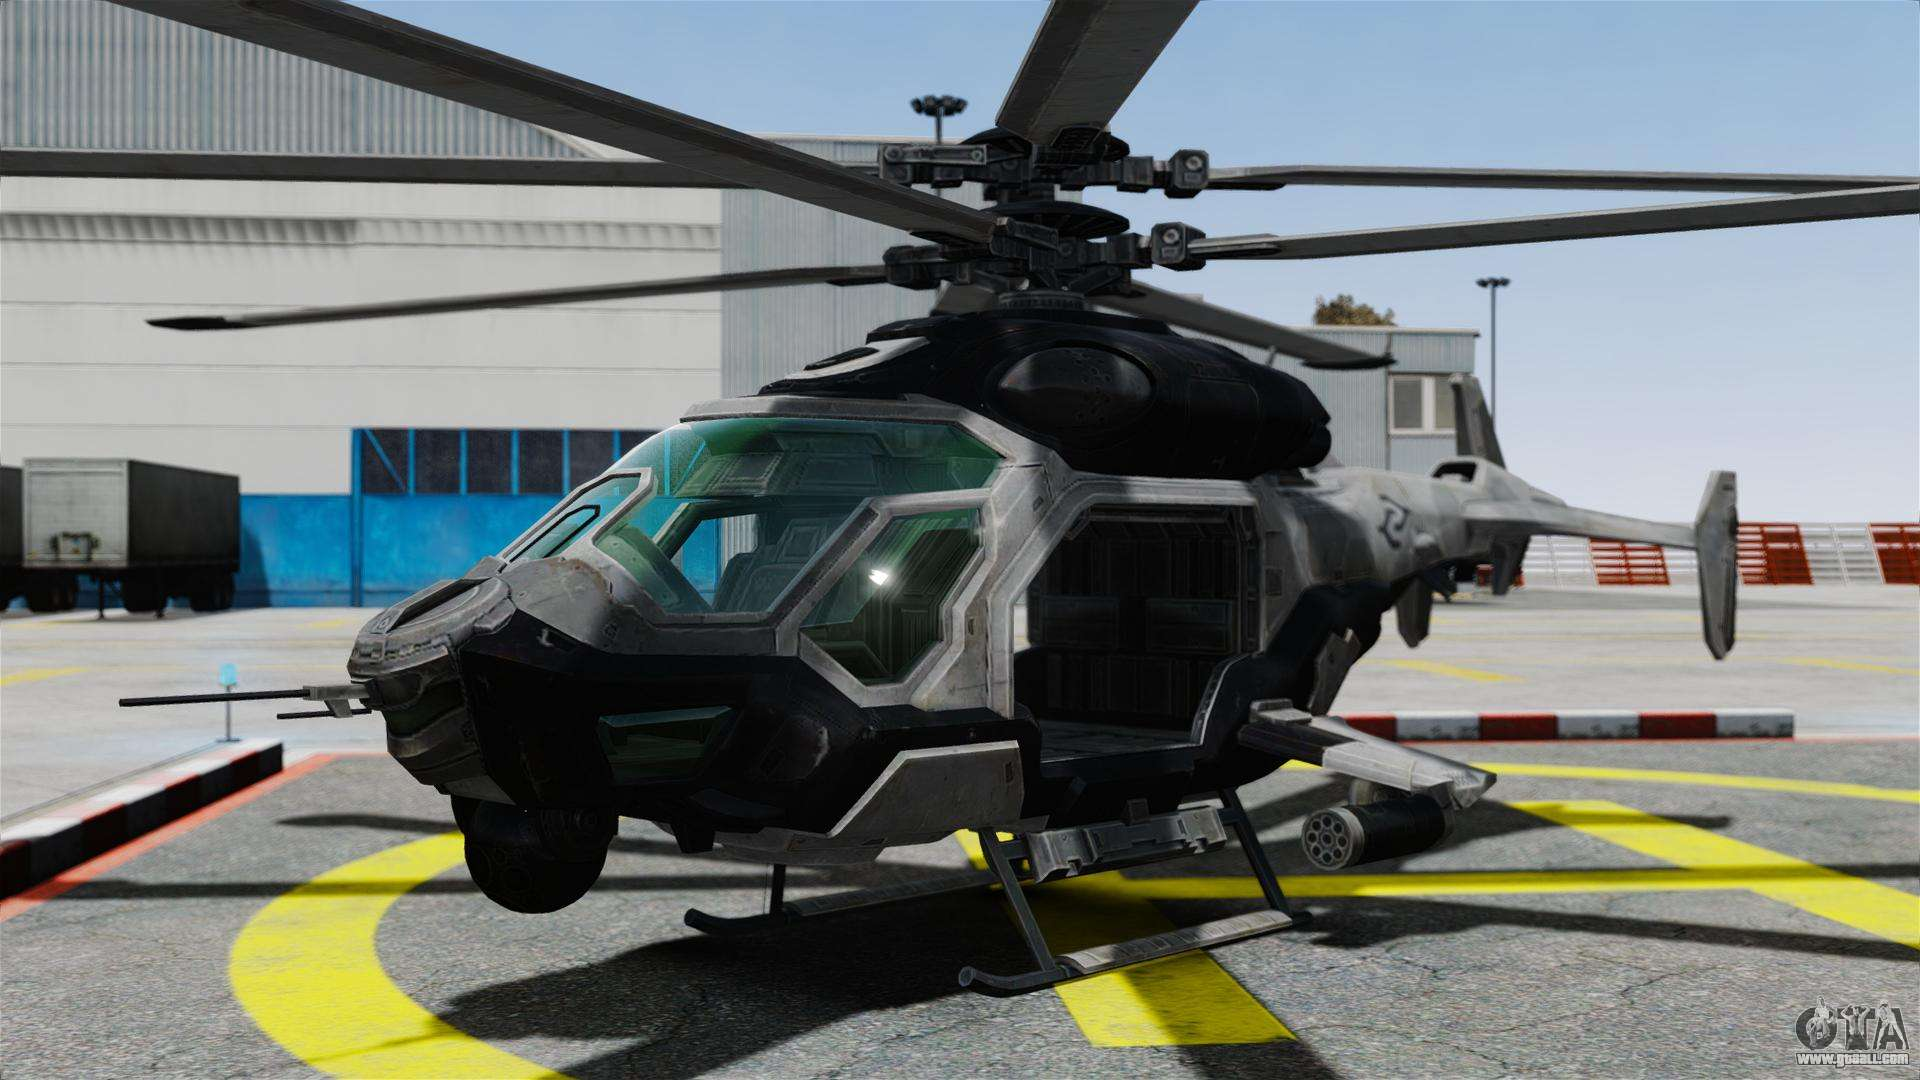 helicopter cheat in gta 5 with 27621 Vertolt Cell on Watch besides 27621 Vertolt Cell besides 67998 Mh 47g Chinook besides Gta san andreas cheats pc further 5649 Kaneda.